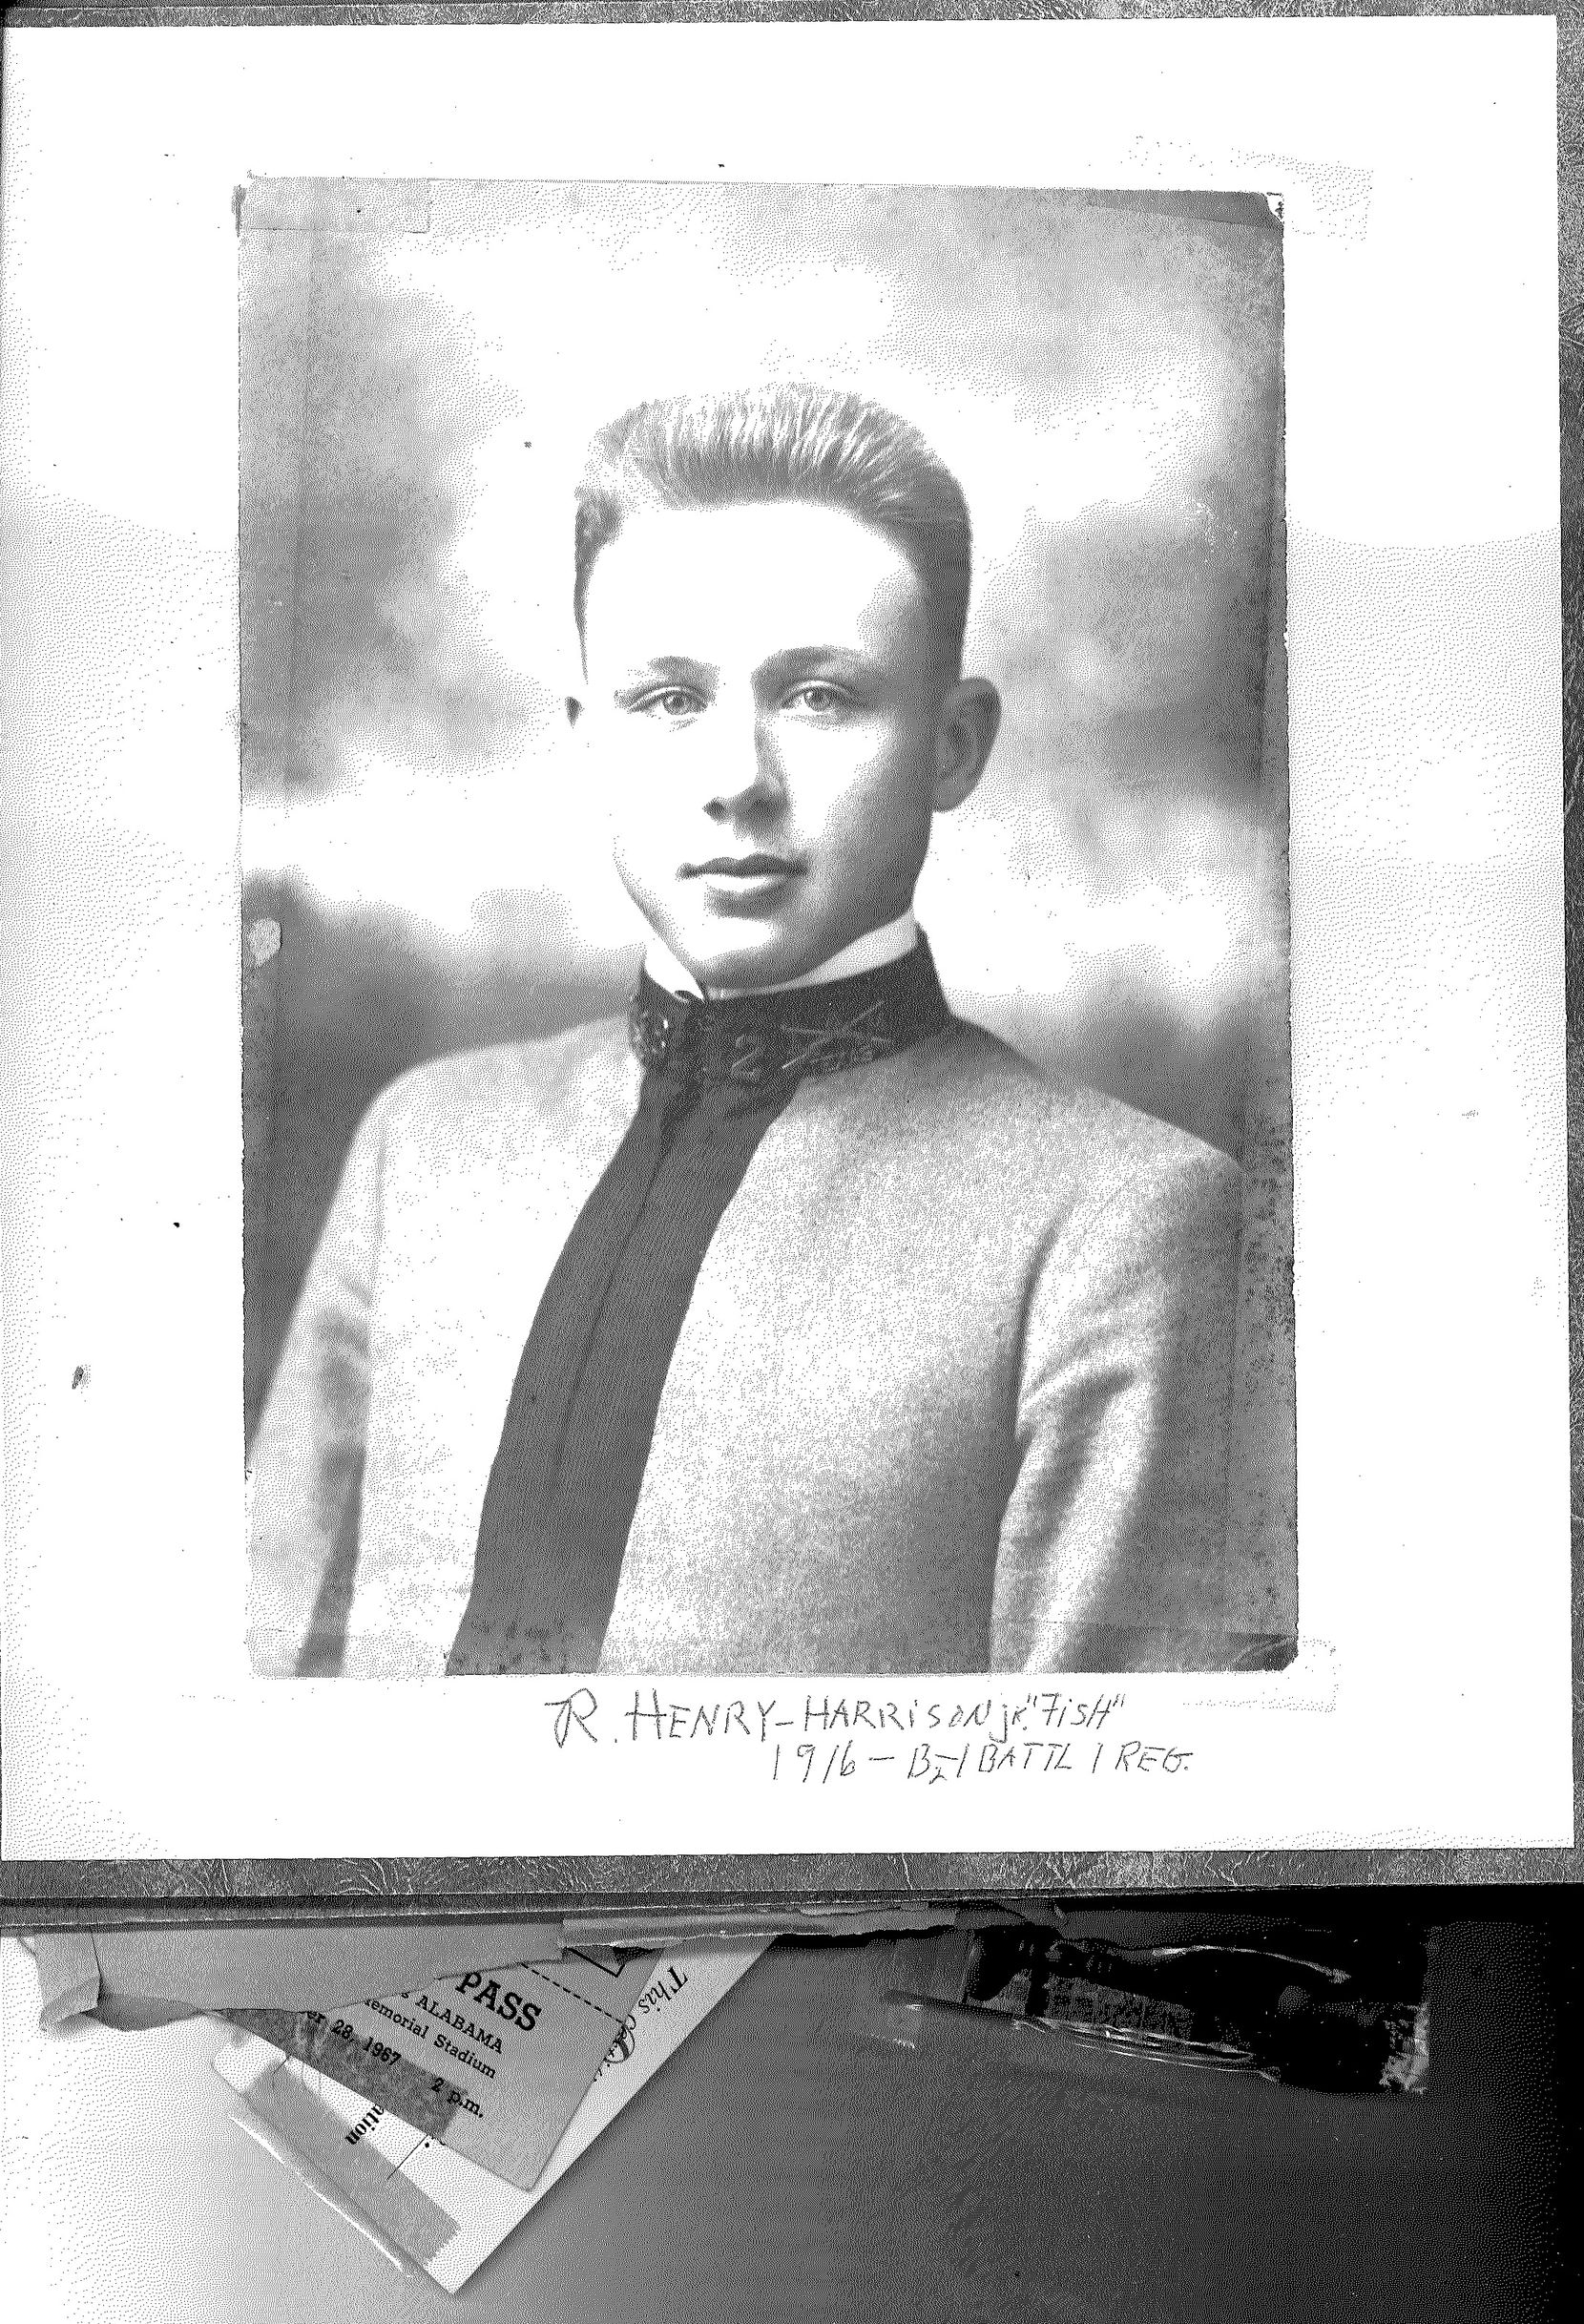 "The freshman class picture of Chick Harrison. Texas A&M player Richard Henry ""Chick"" Harrison played for the Aggies in 1917, left for World War I, and was then summoned back in a letter by legendary coach D.X. Bible. Harrison had also suffered from the Spanish Flu."